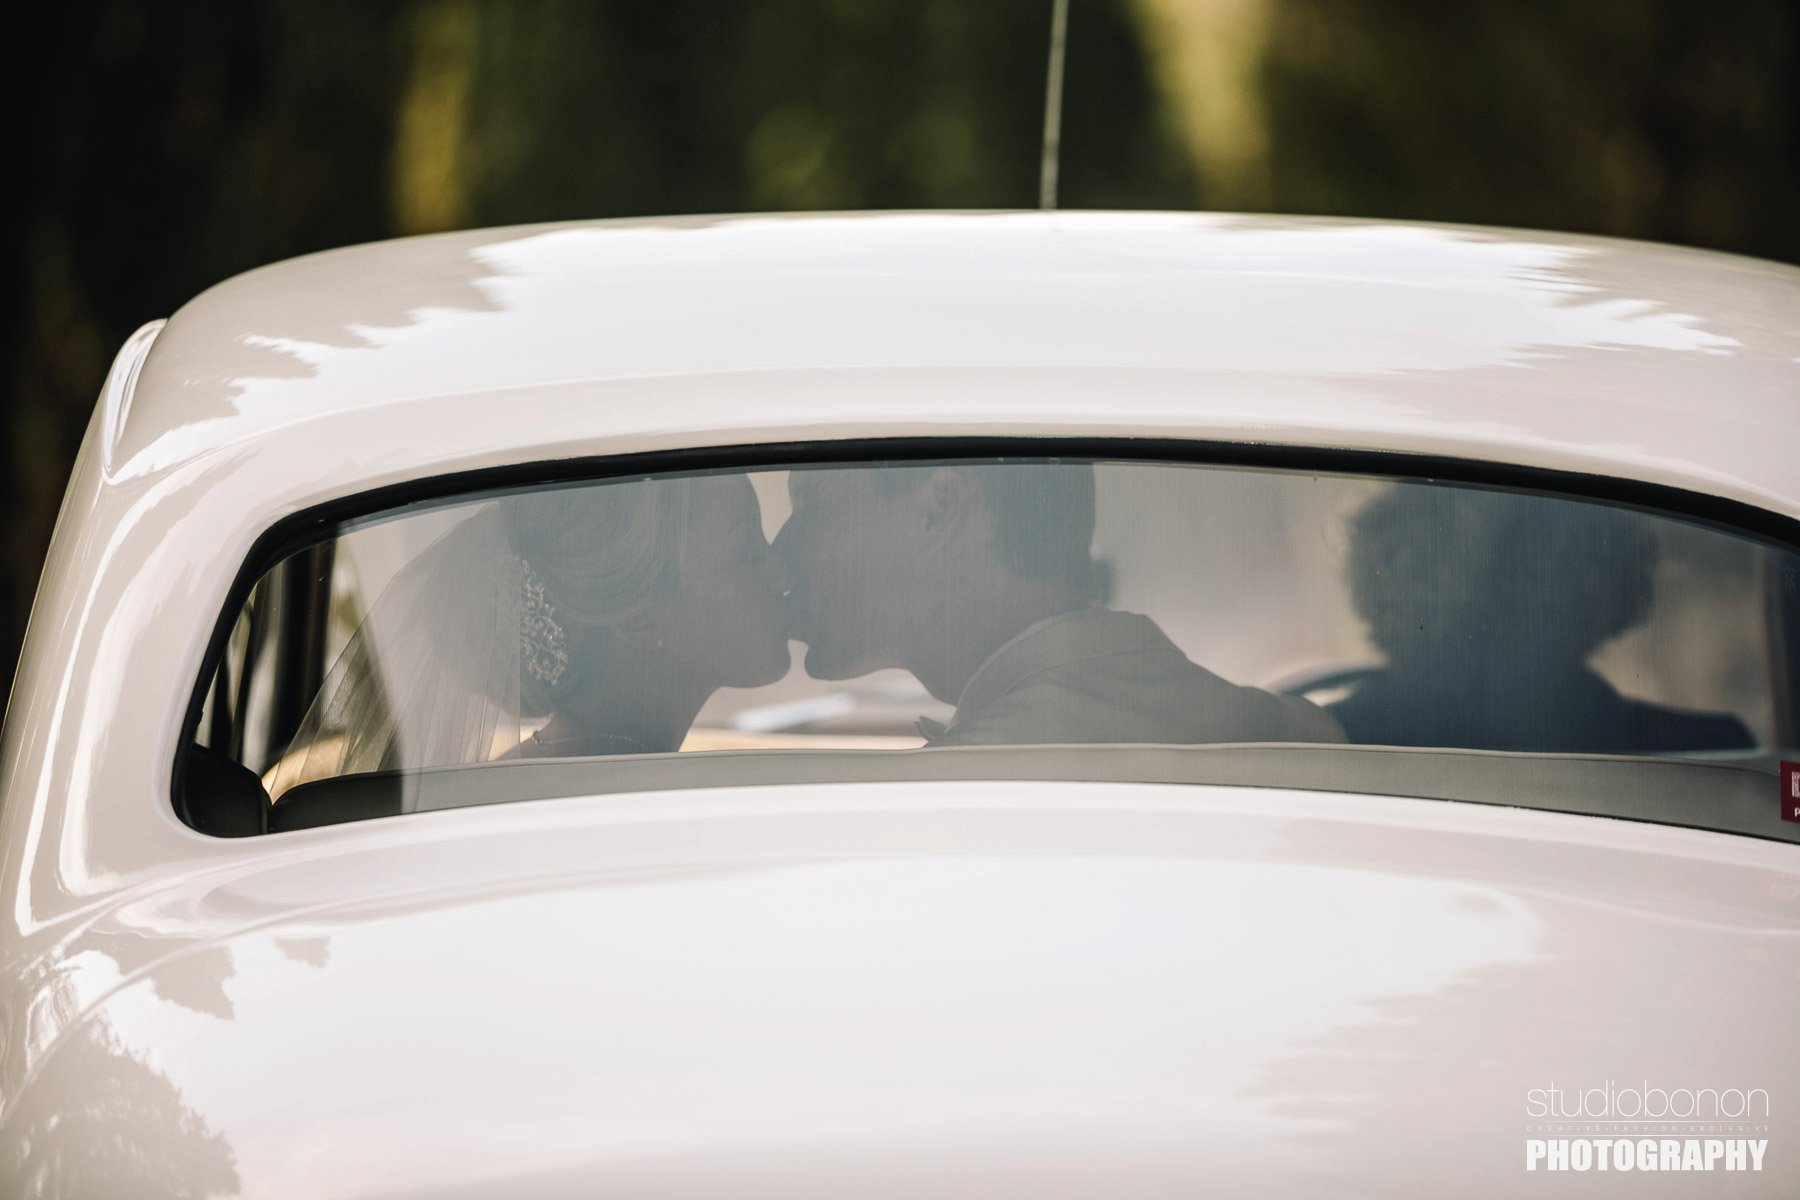 Bride and groom kiss into Rolls Royce at Vicigliata Castle into Florence countryside. Elegant destination luxury wedding